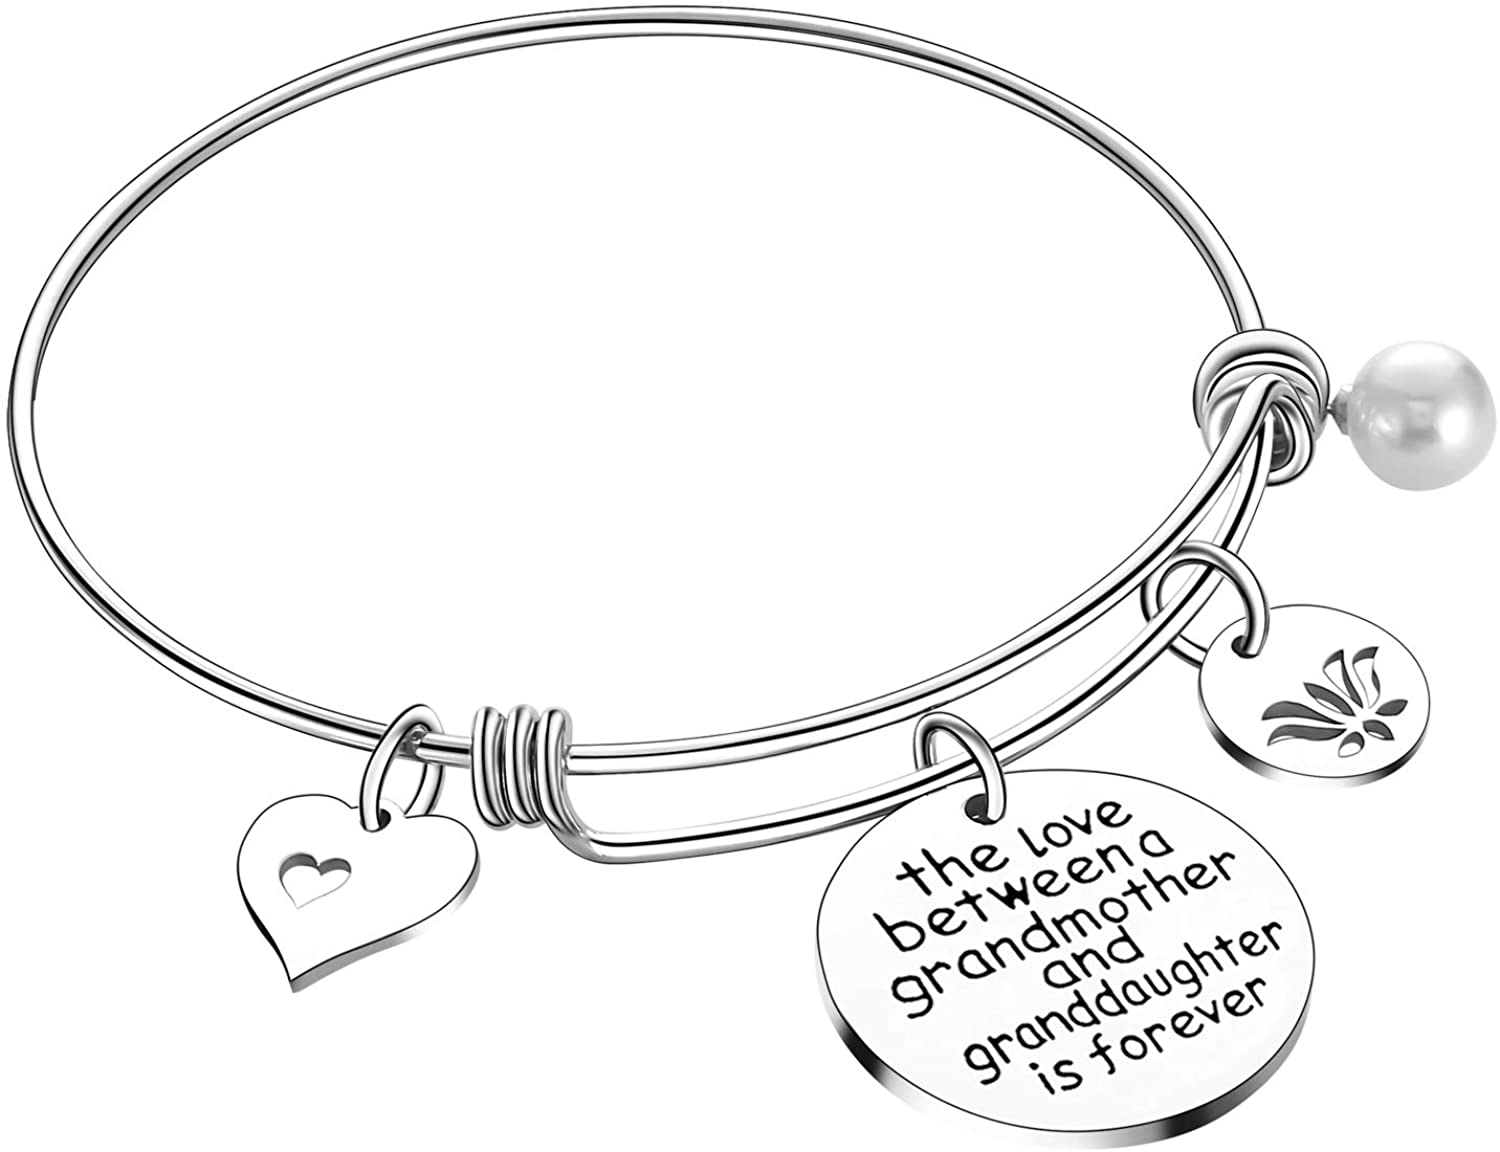 Grandma Gifts The Love Between A Grandmother and Grandson Granddaughter is Forever Bracelet